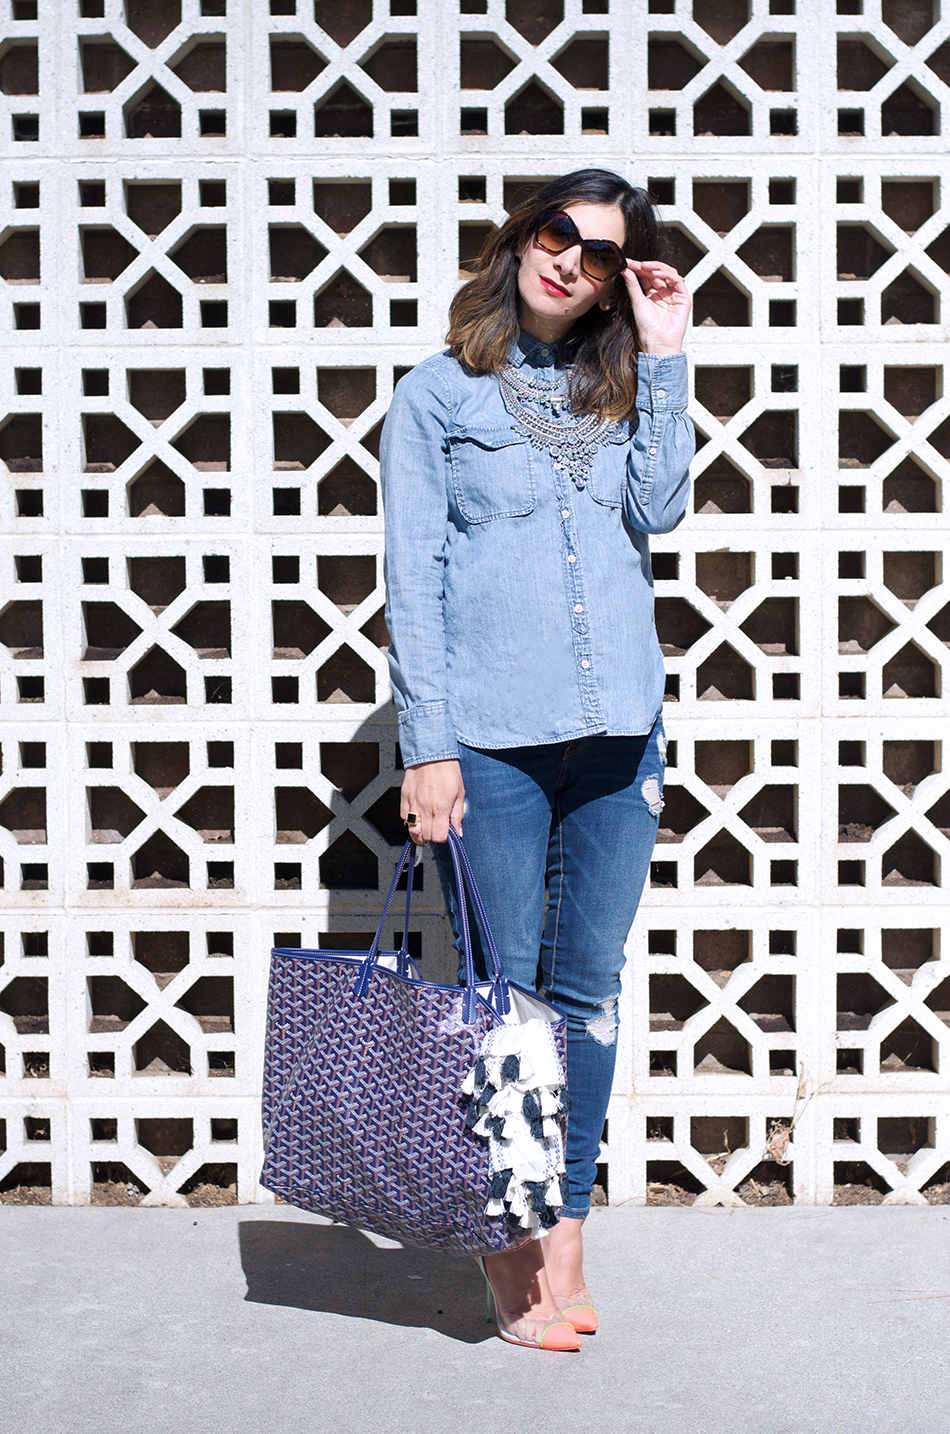 denim maternity outfit